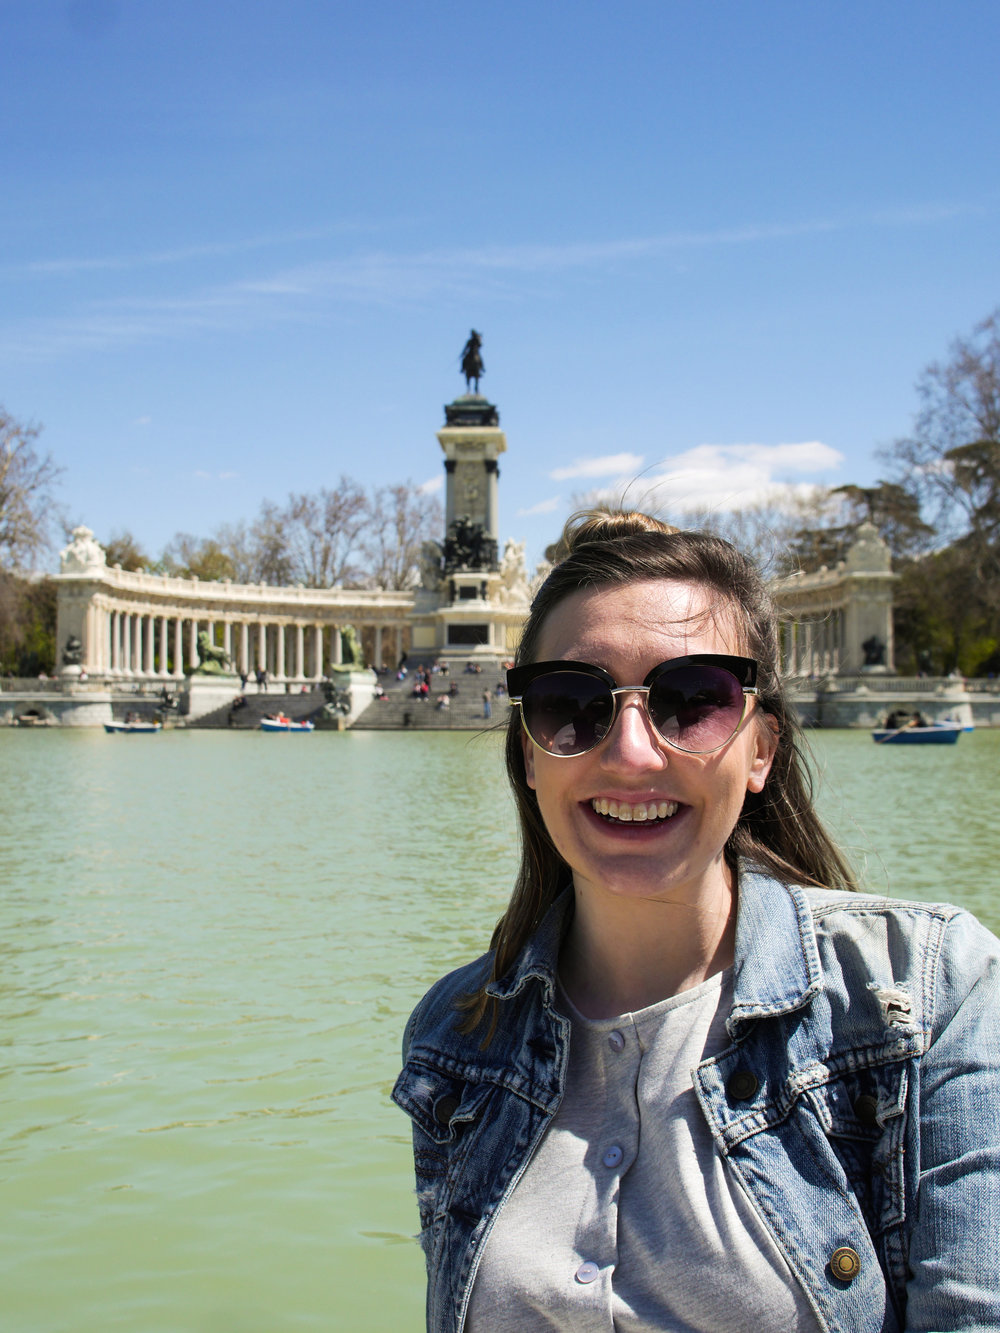 Candid Alexandra in front of the Monument to Alfonso XII in Madrid, Spain